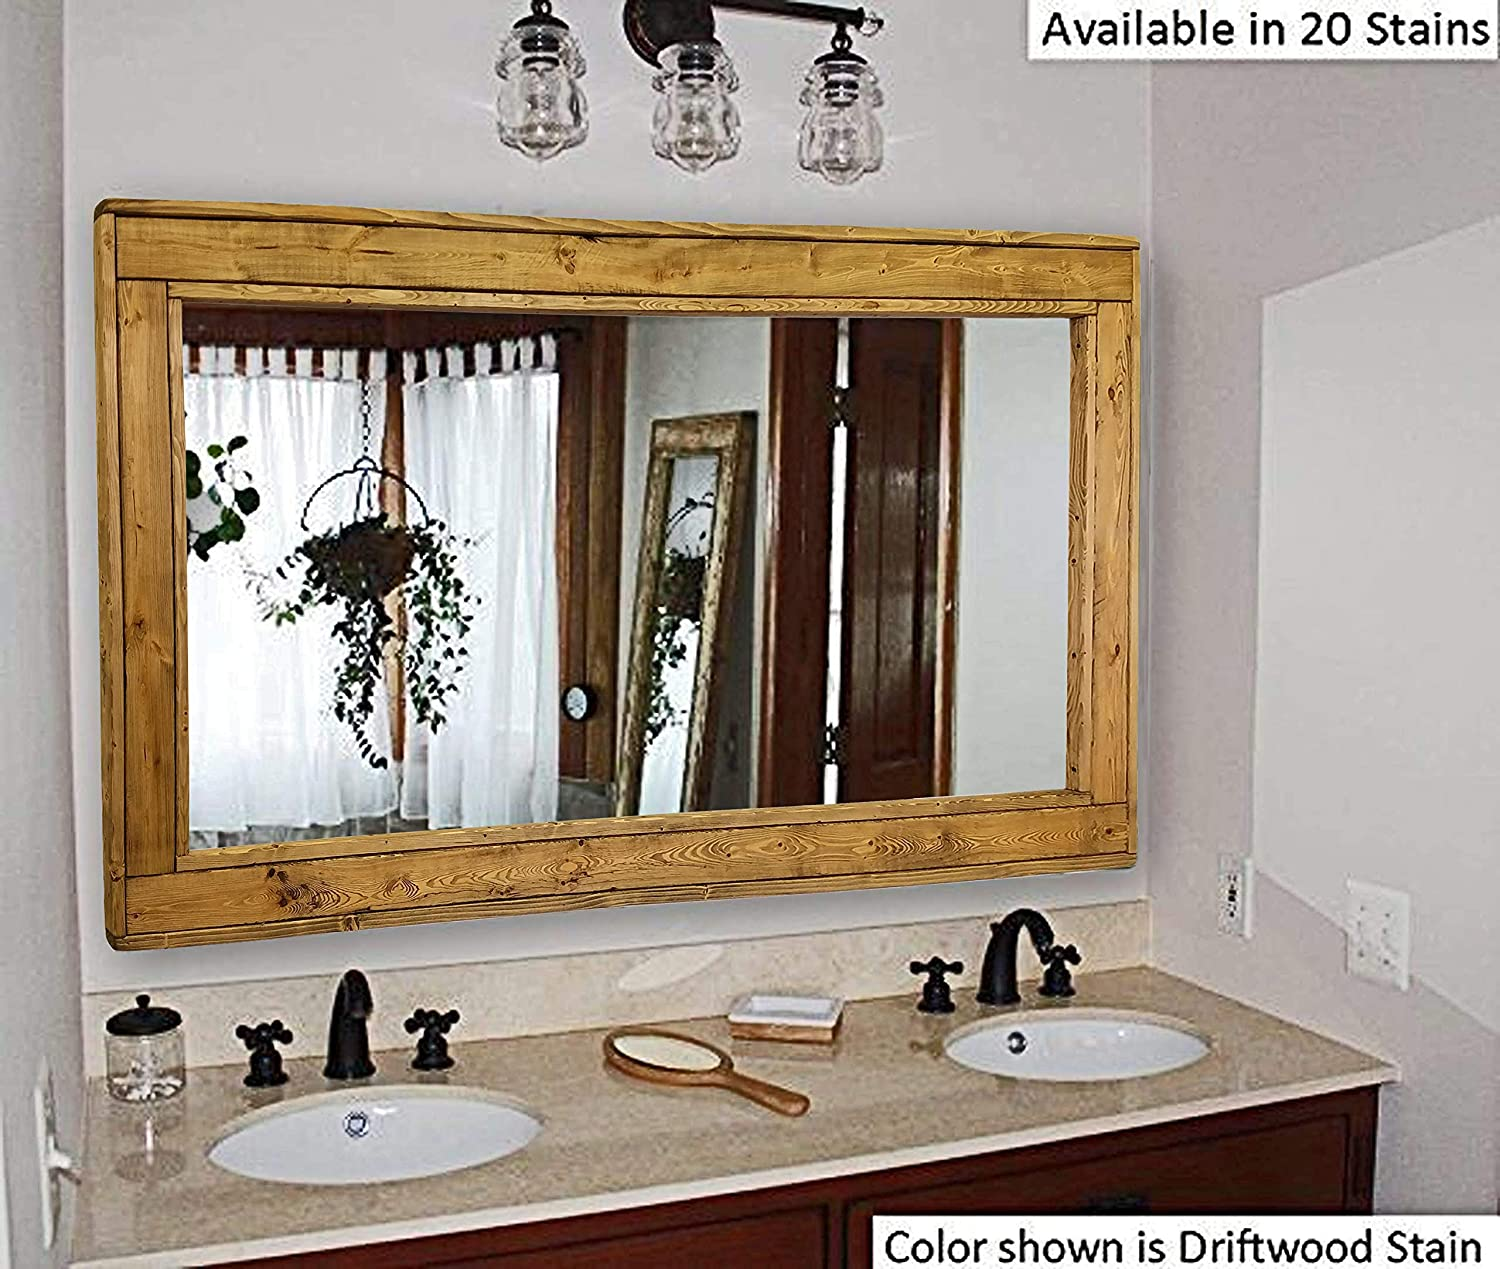 Amazon Com Herringbone Large Mirror Double Vanity Mirror Available In 20 Colors Shown In Driftwood Reclaimed Wooden Framed Mirror Ex Large Wall Mirror Rustic Modern Home 24x30 36x30 42x30 60x30 Handmade